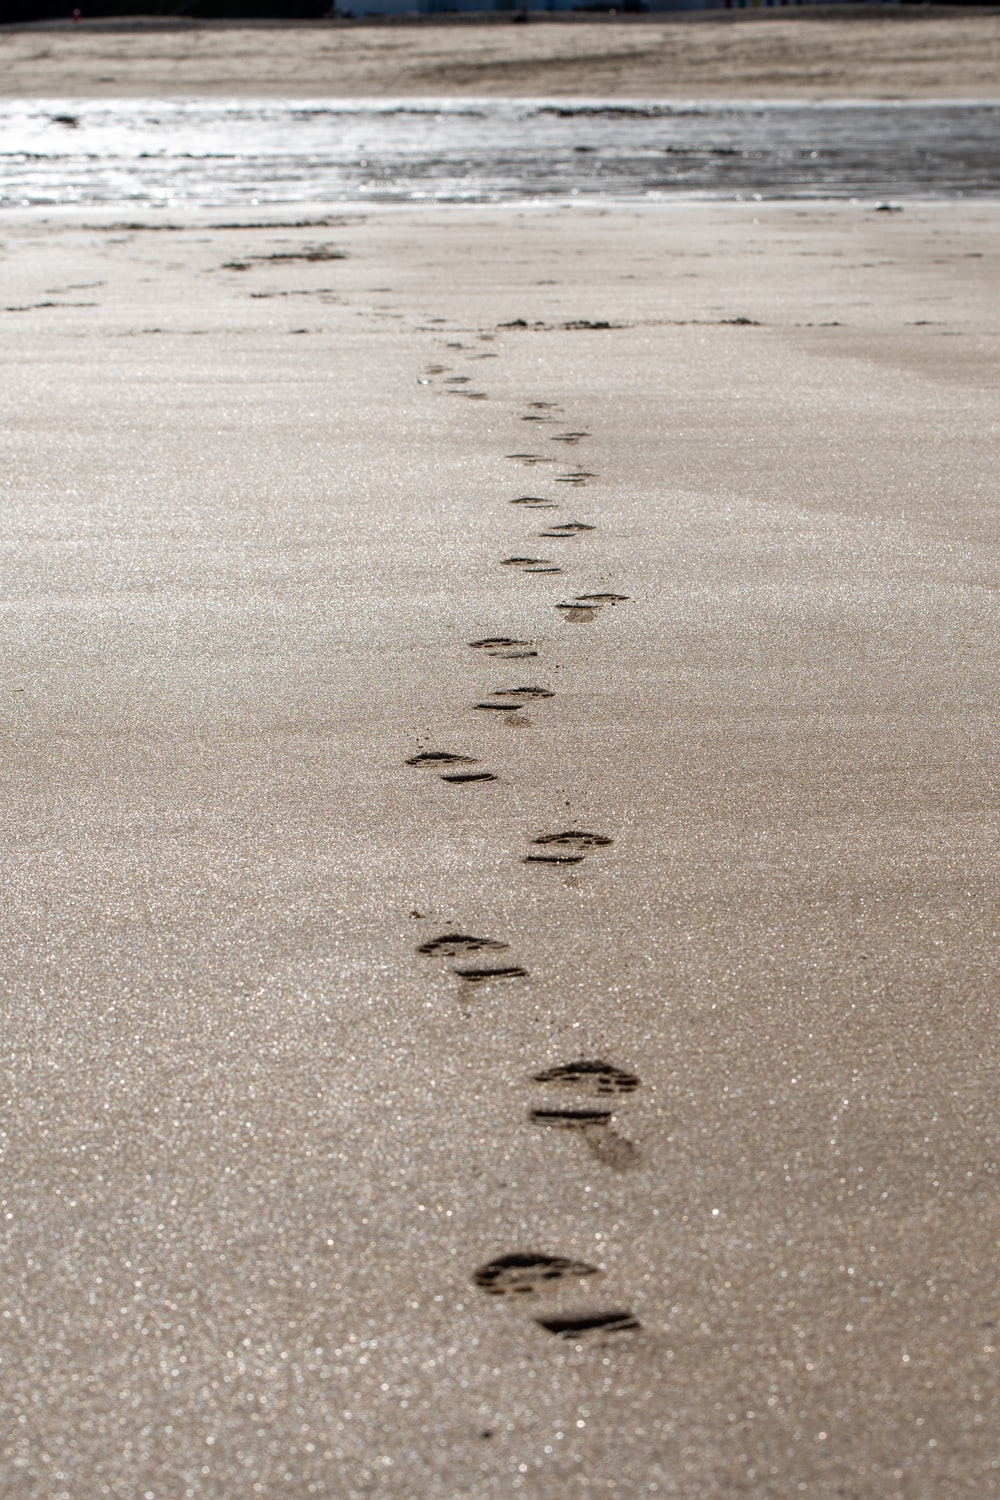 sand with footprints during day